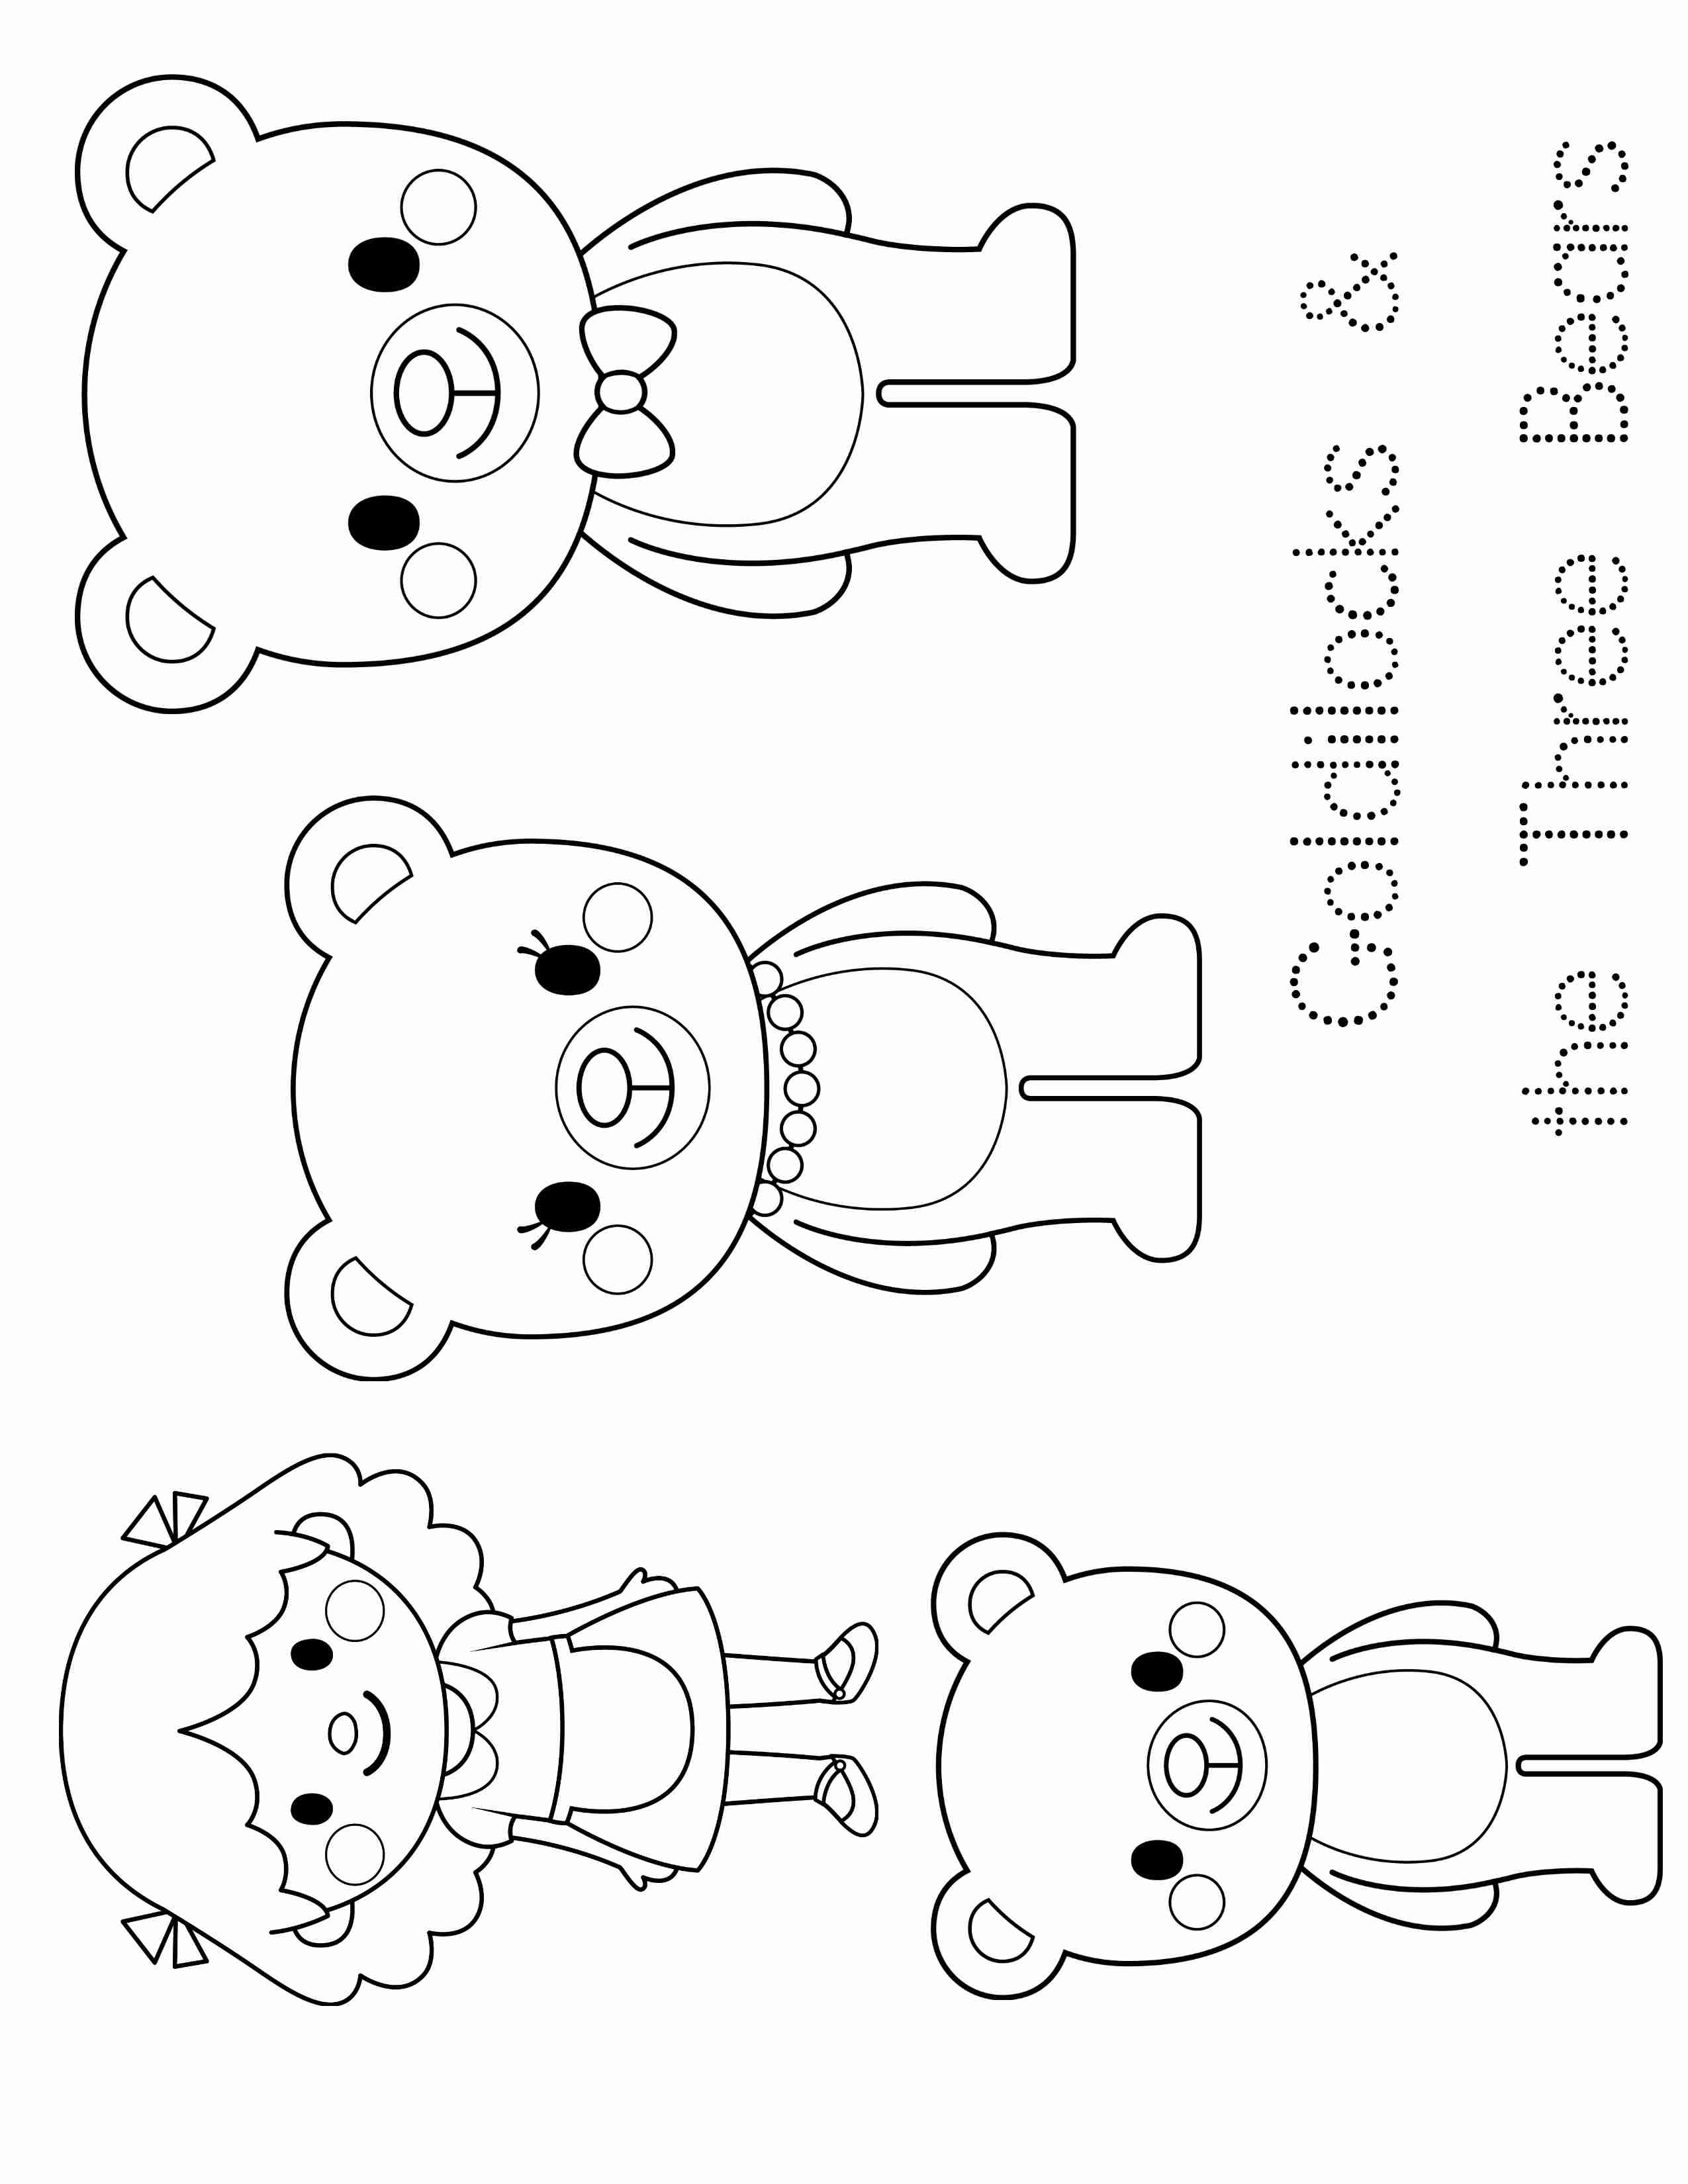 Three Bears Coloring Pages At Getcolorings